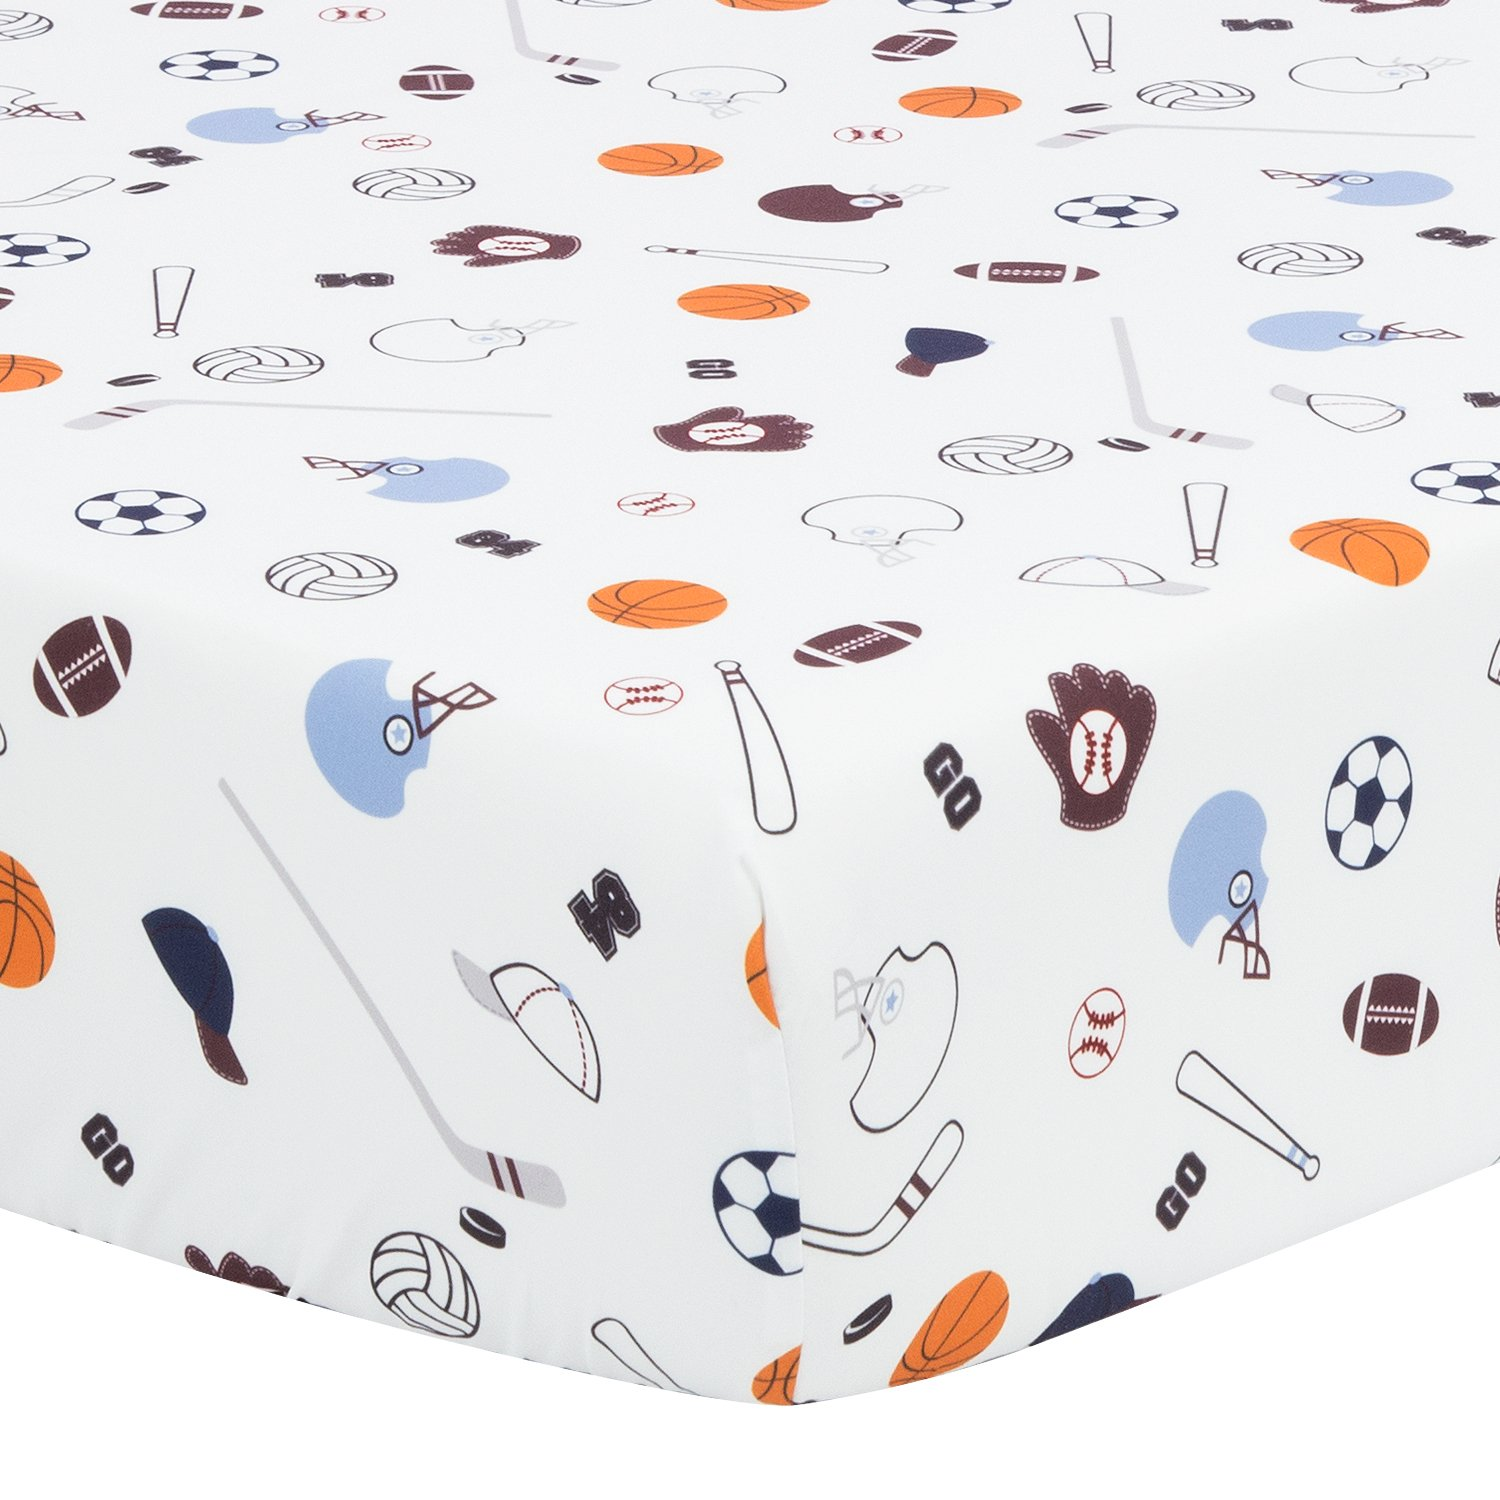 TILLYOU Microfiber Sports Crib Sheet, Ball Games Toddler Sheets for Baby Boys and Girls, Silky Soft Breathable Cozy Hypoallergenic, 28 x 52in